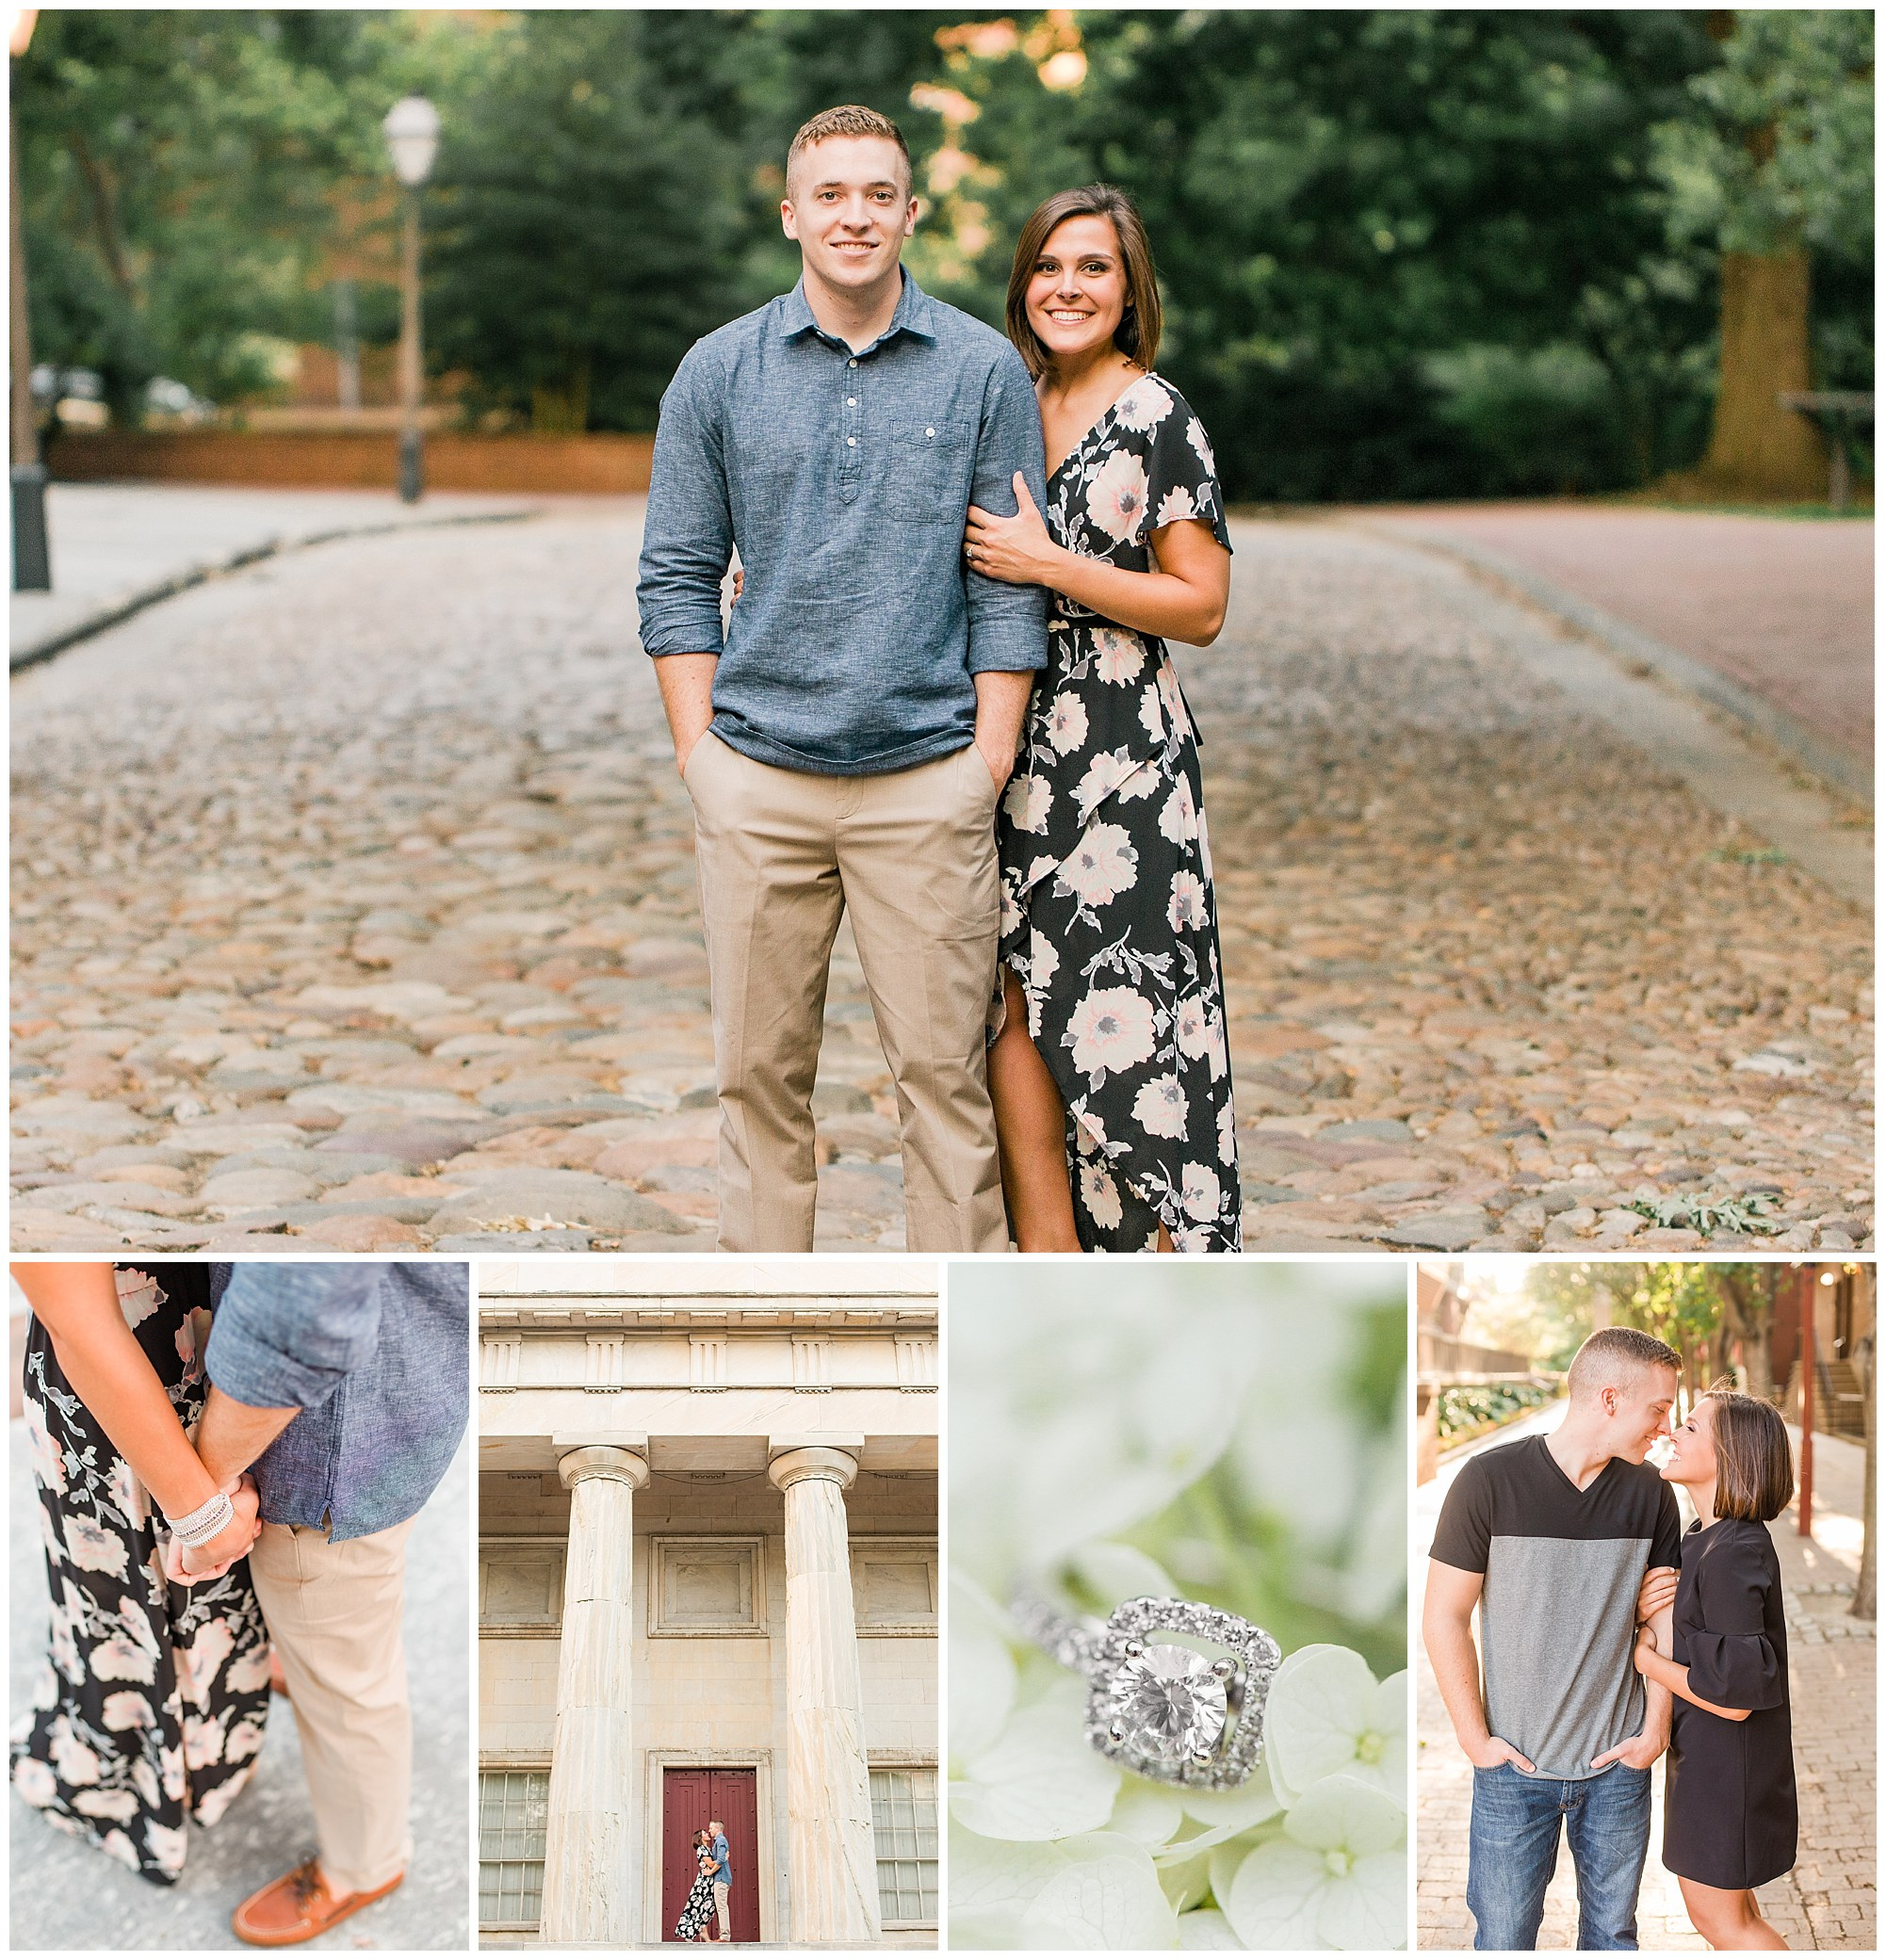 The Expert Guide to Taking Chic Engagement Photos The Expert Guide to Taking Chic Engagement Photos new picture